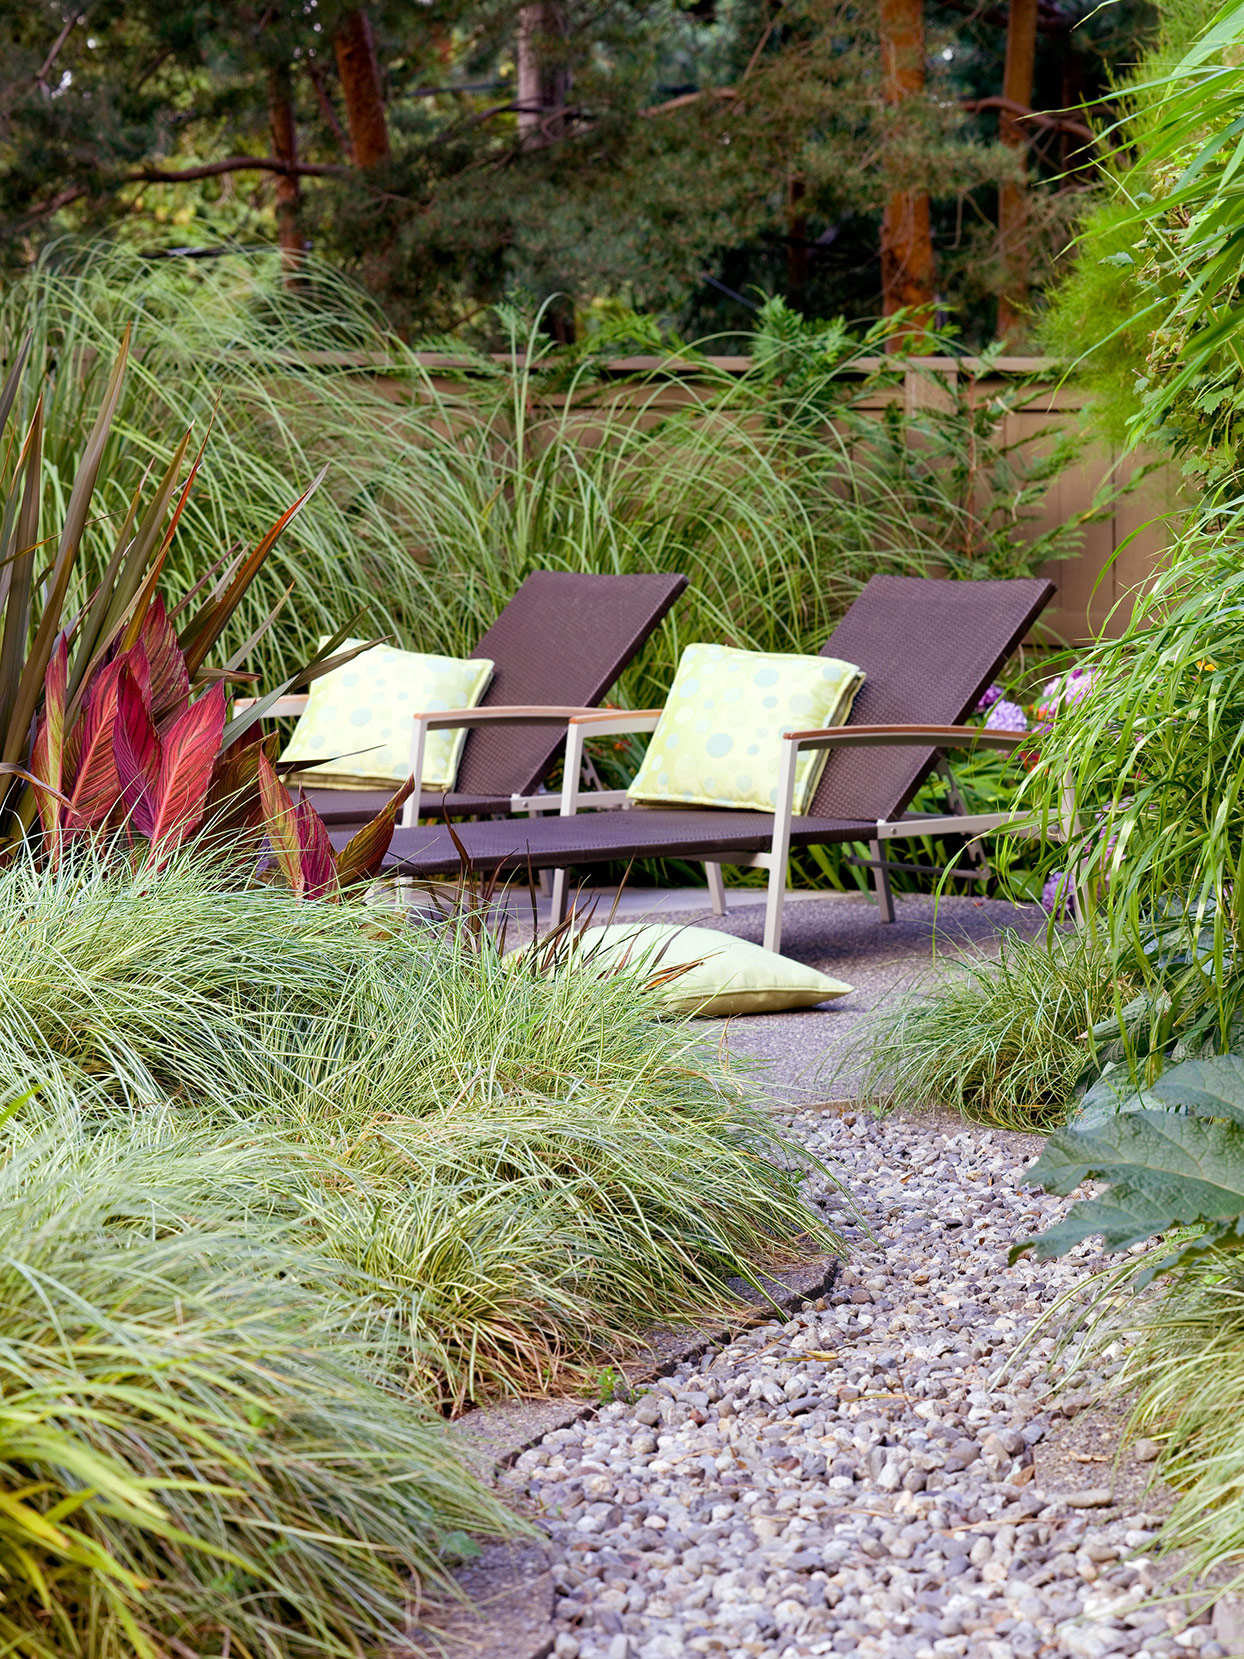 ornamental grasses growing by rock path and lounging chairs